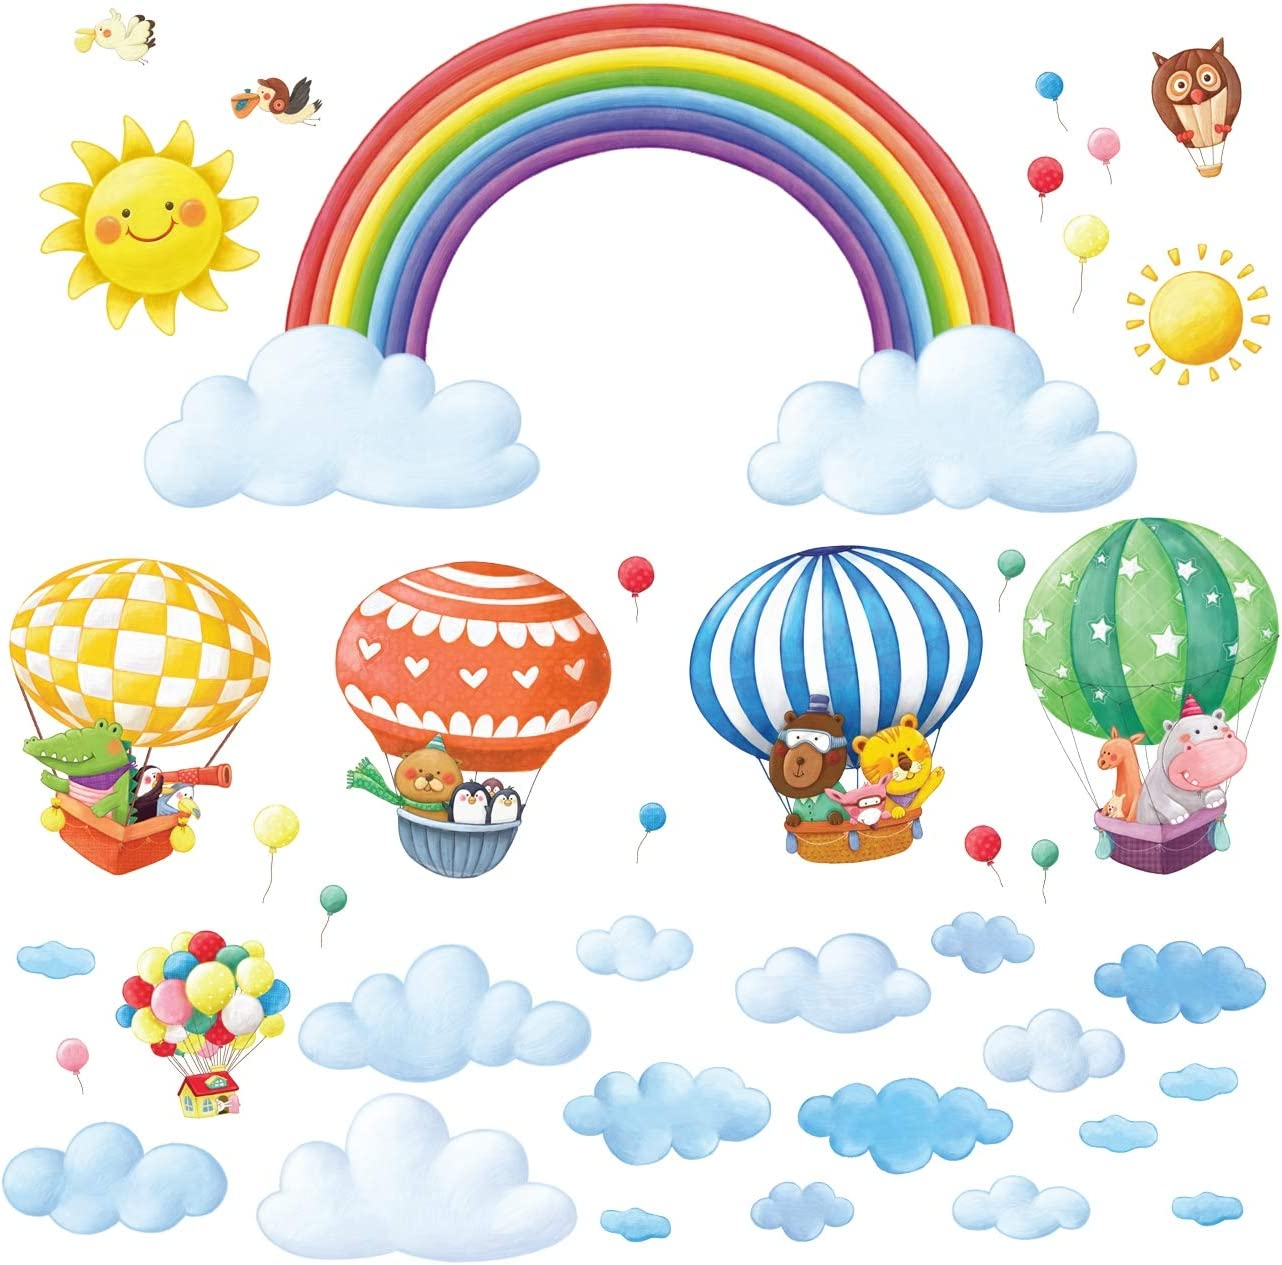 DECOWALL DA-1913P1406A Rainbow and Animal Train Kids Wall Stickers Wall Decals Peel and Stick Removable Wall Stickers for Kids Nursery Bedroom Living Room